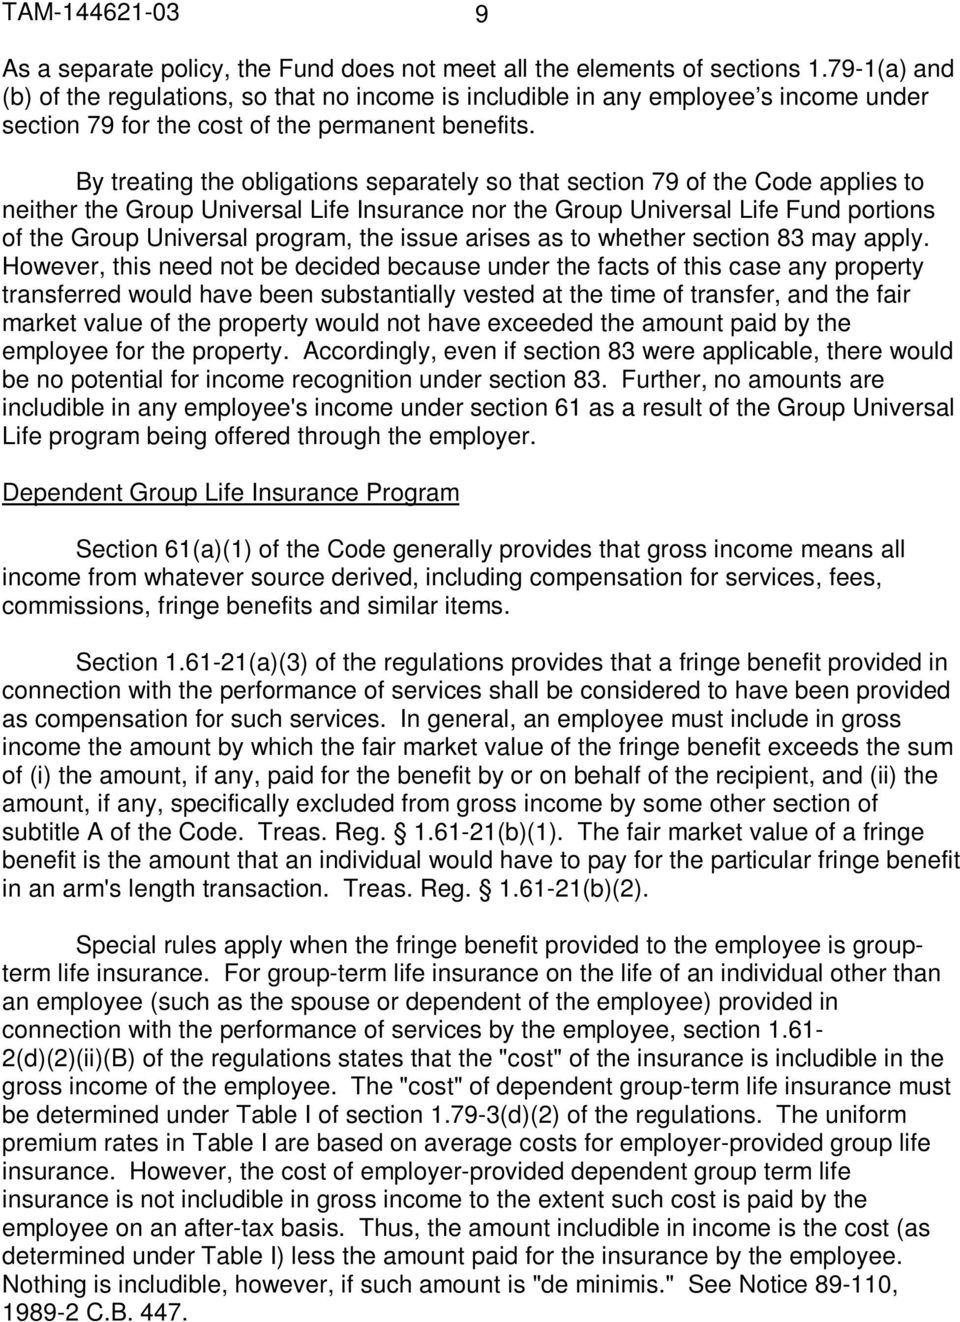 By treating the obligations separately so that section 79 of the Code applies to neither the Group Universal Life Insurance nor the Group Universal Life Fund portions of the Group Universal program,